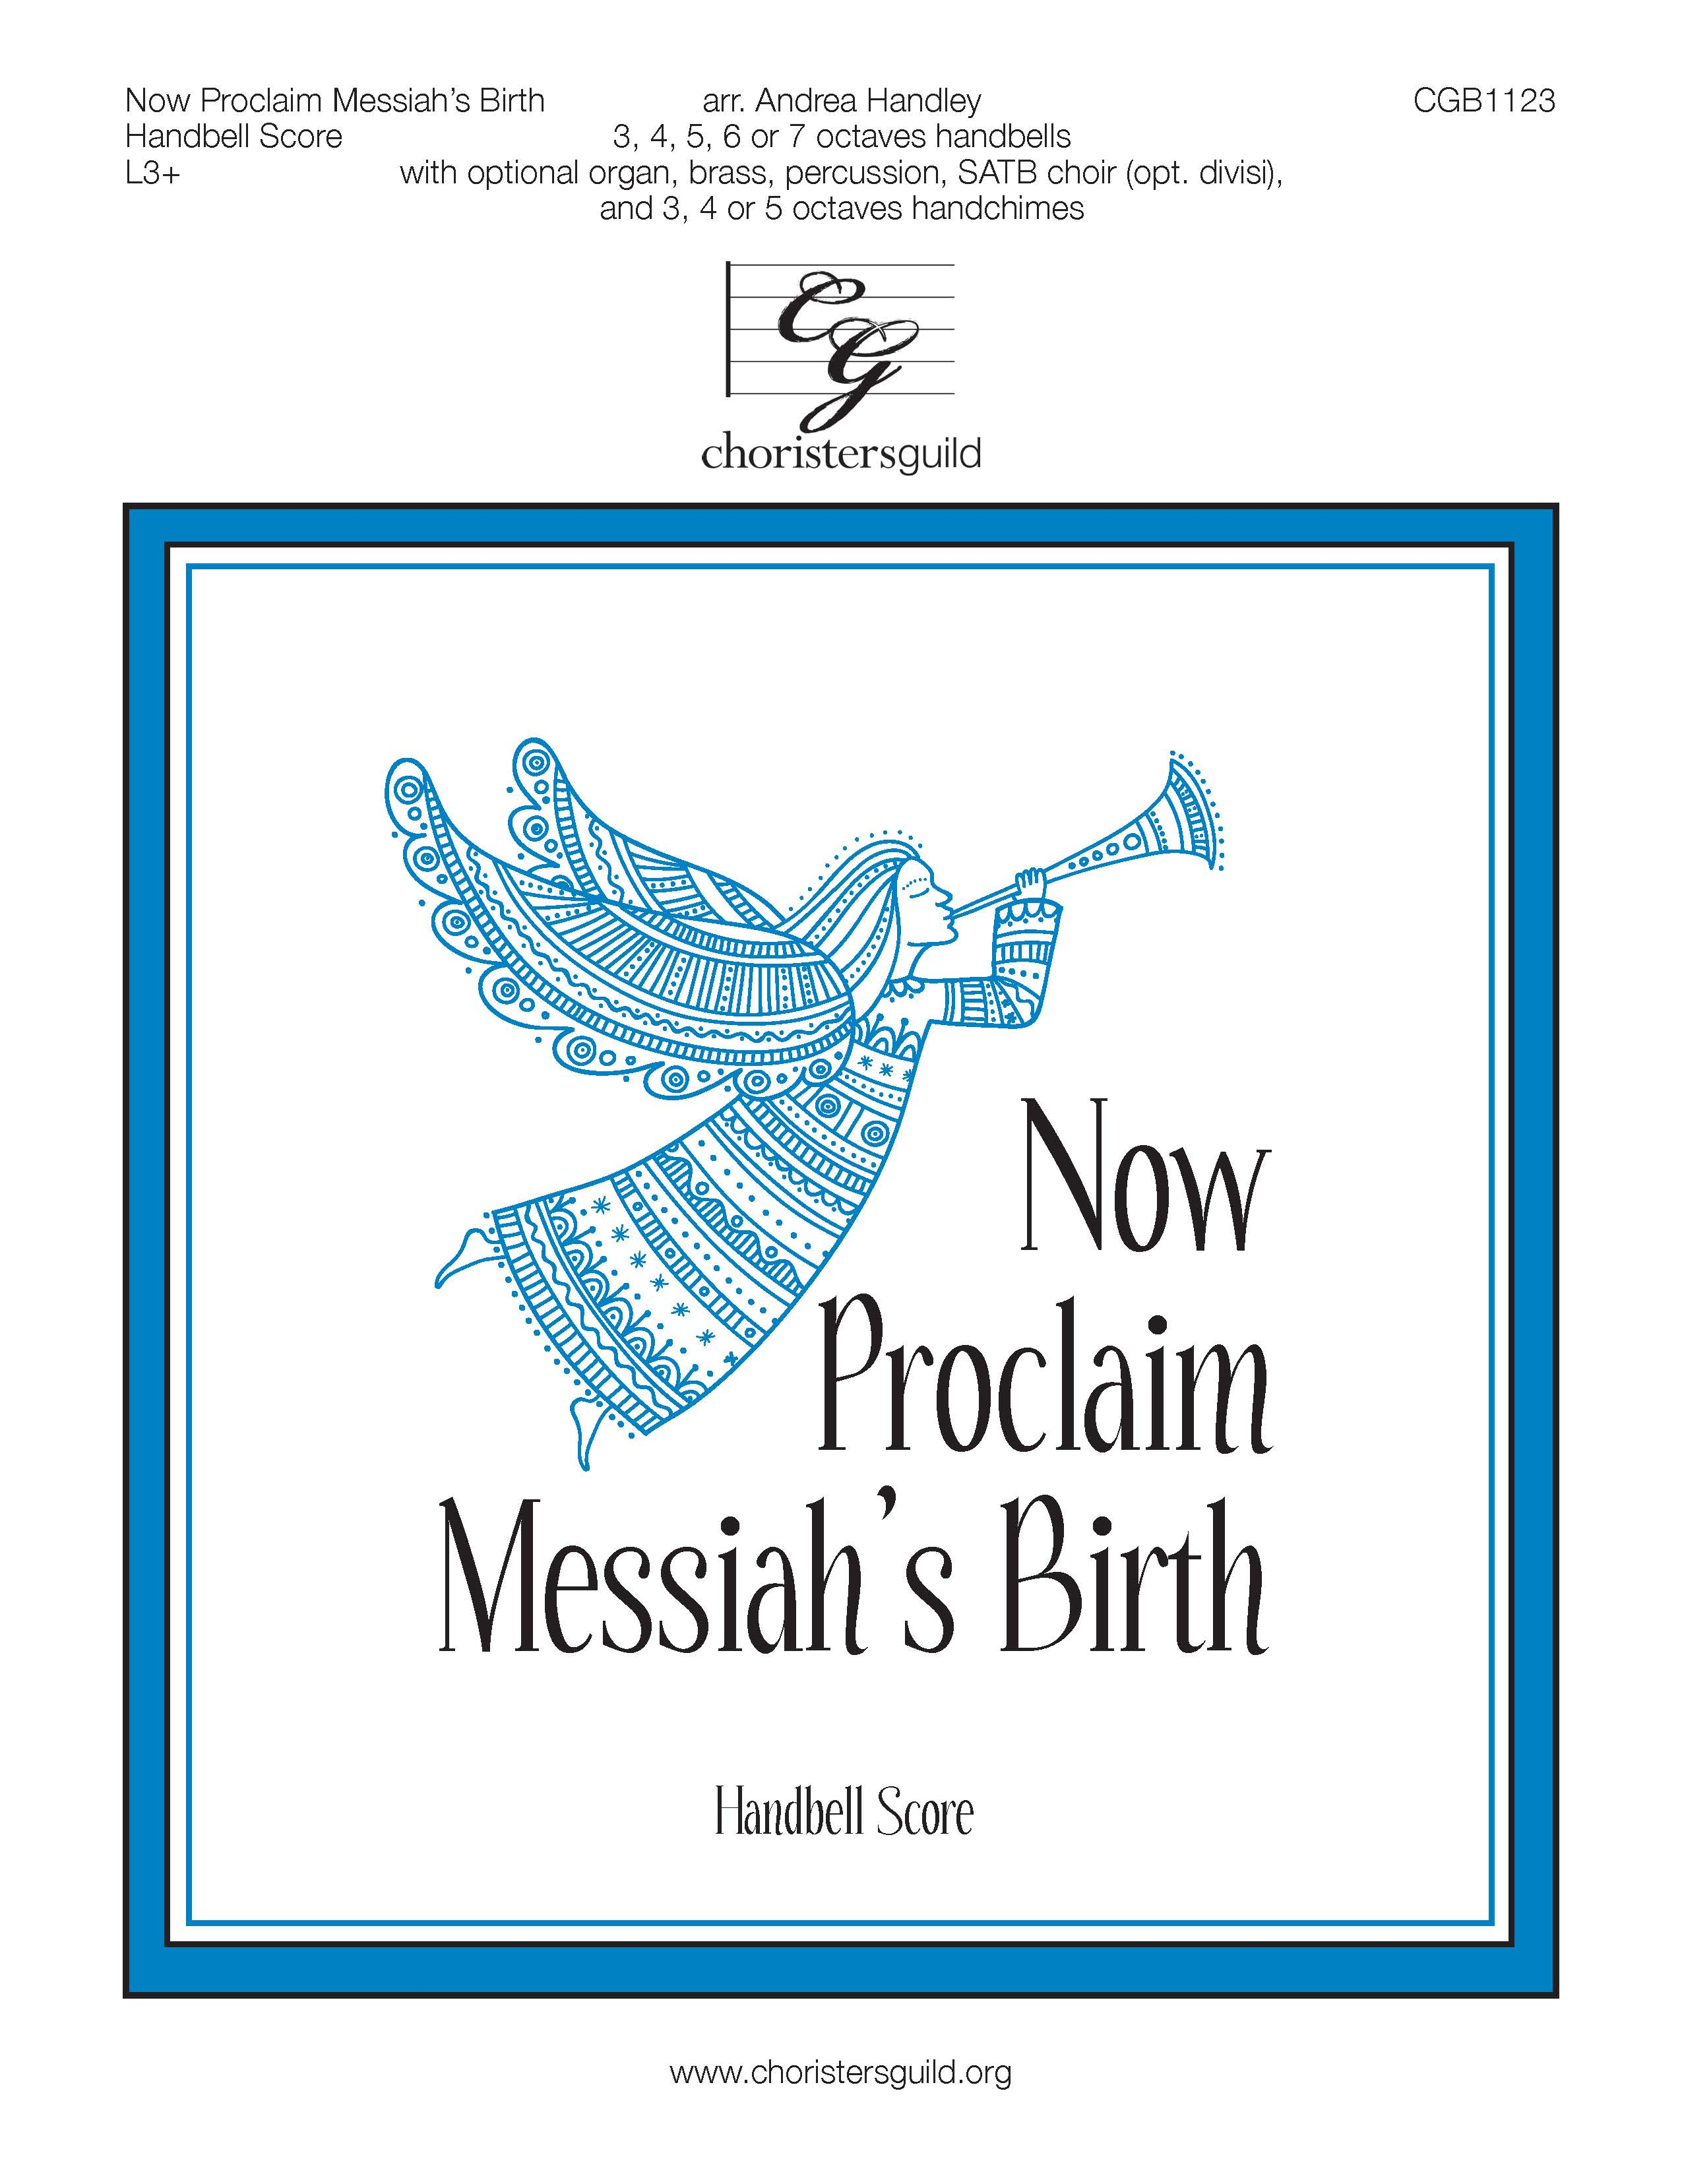 Now Proclaim Messiah's Birth - Handbell Score